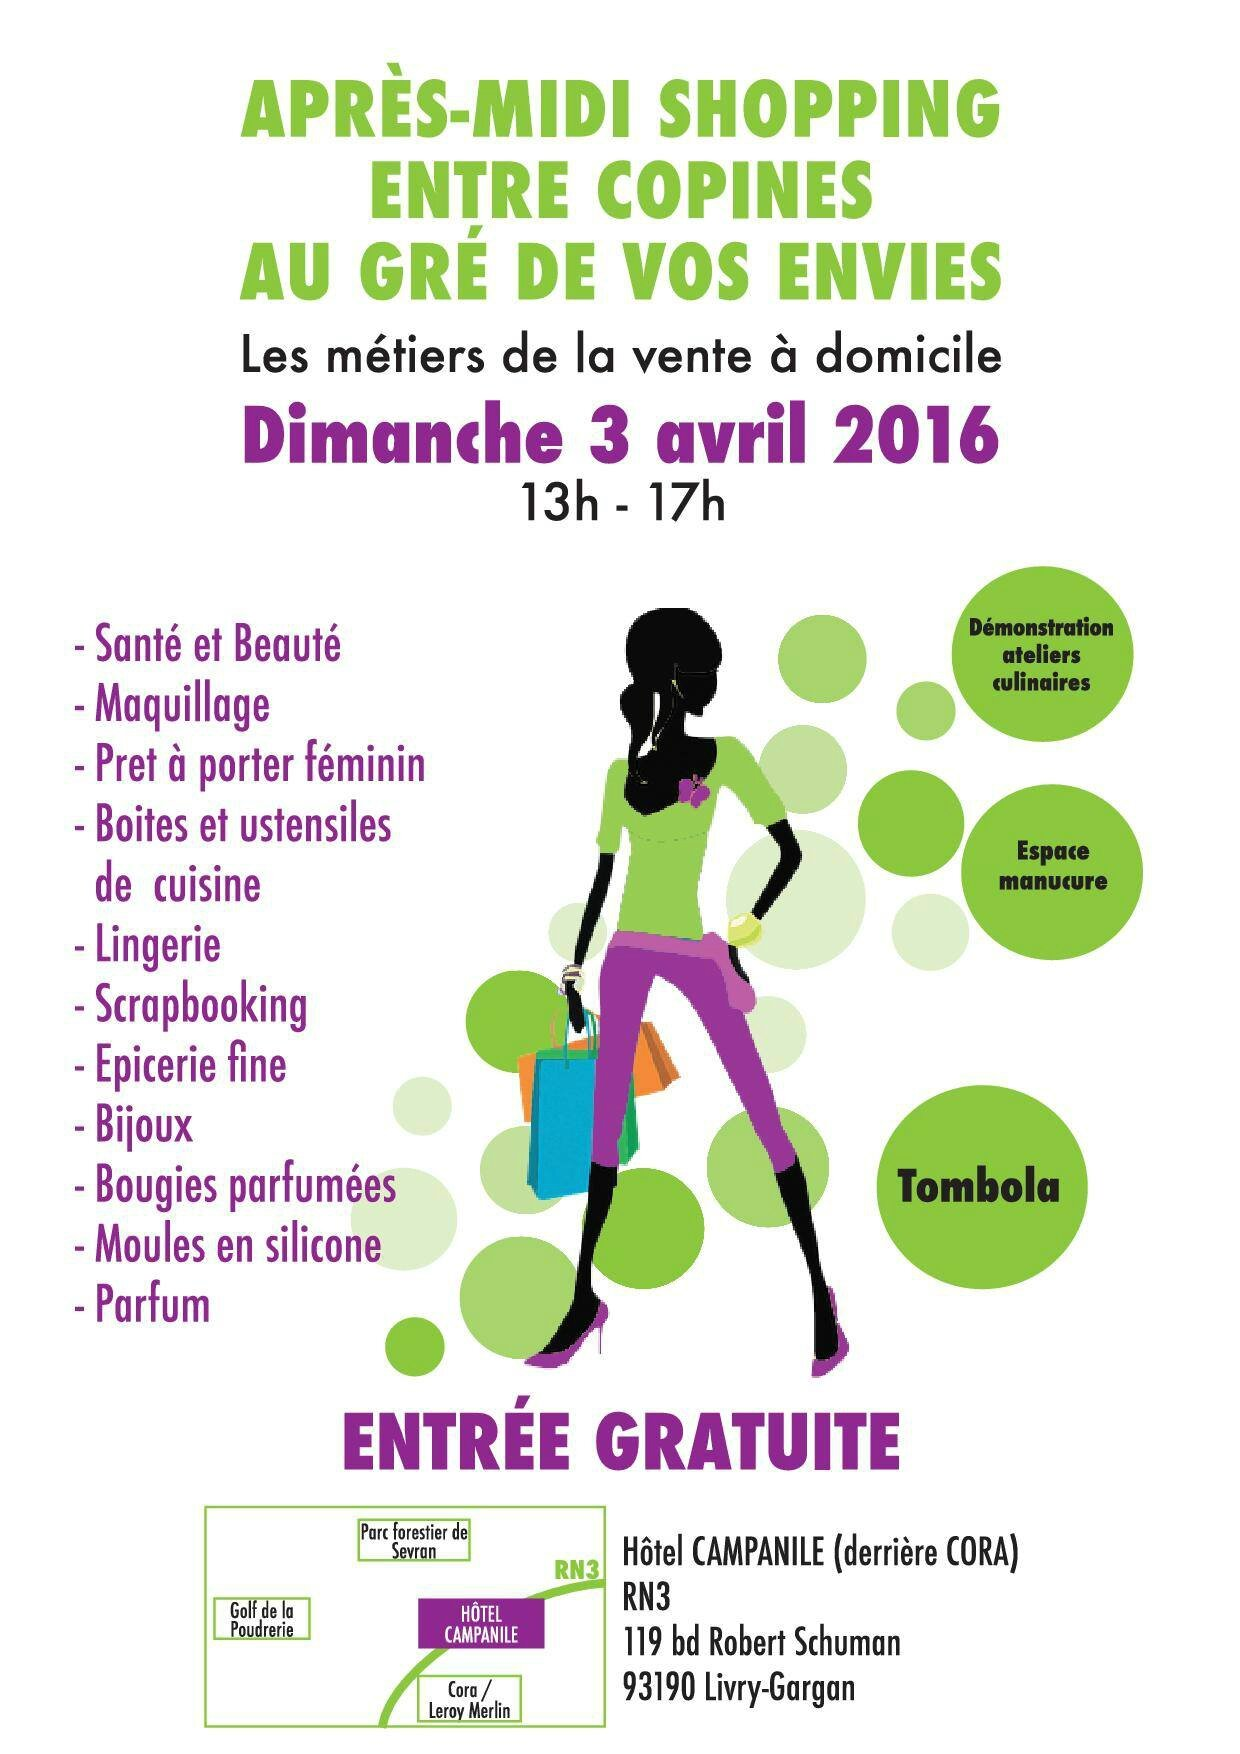 Salon vdi livry gargan le 3 avril 2016 stampinharmony for Salon vdi